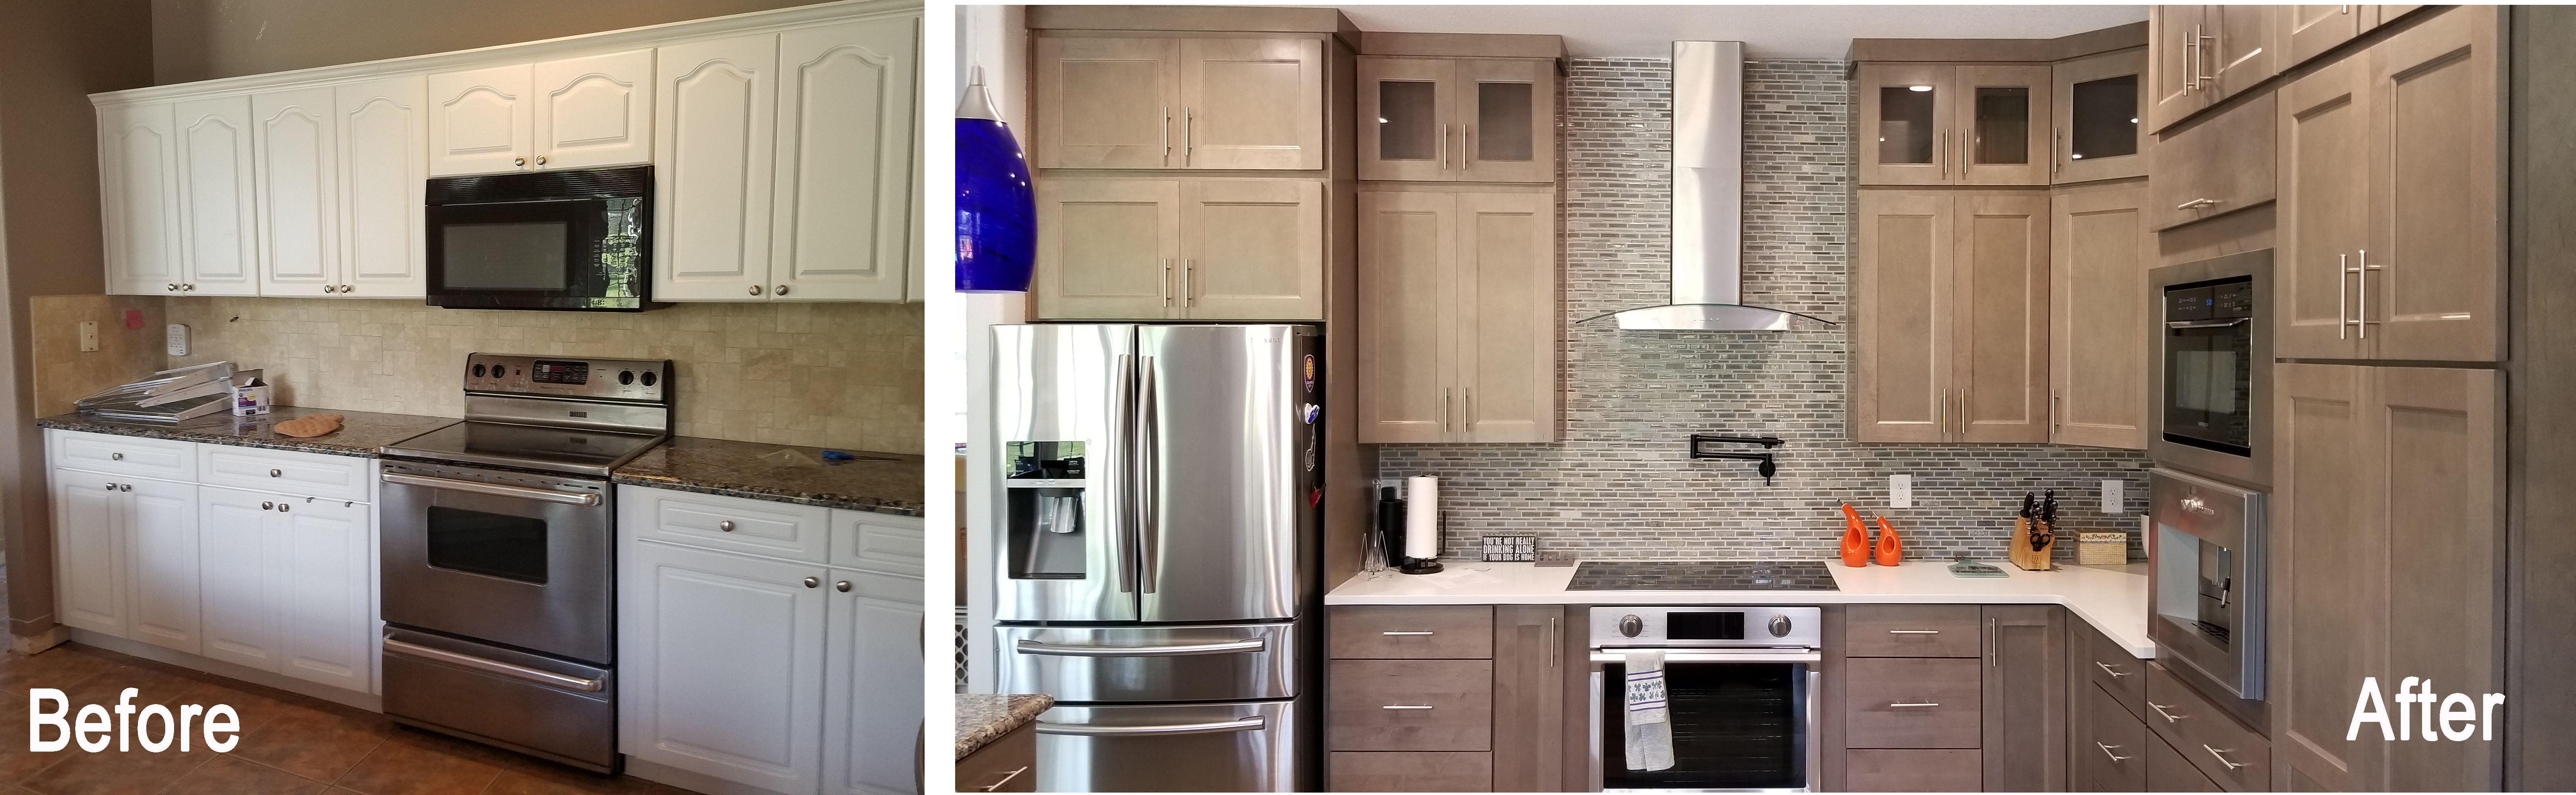 Transitional Kitchen Update Done In A Smoke Finish Kitchen Remodeling Projects Home Kitchens Kitchen